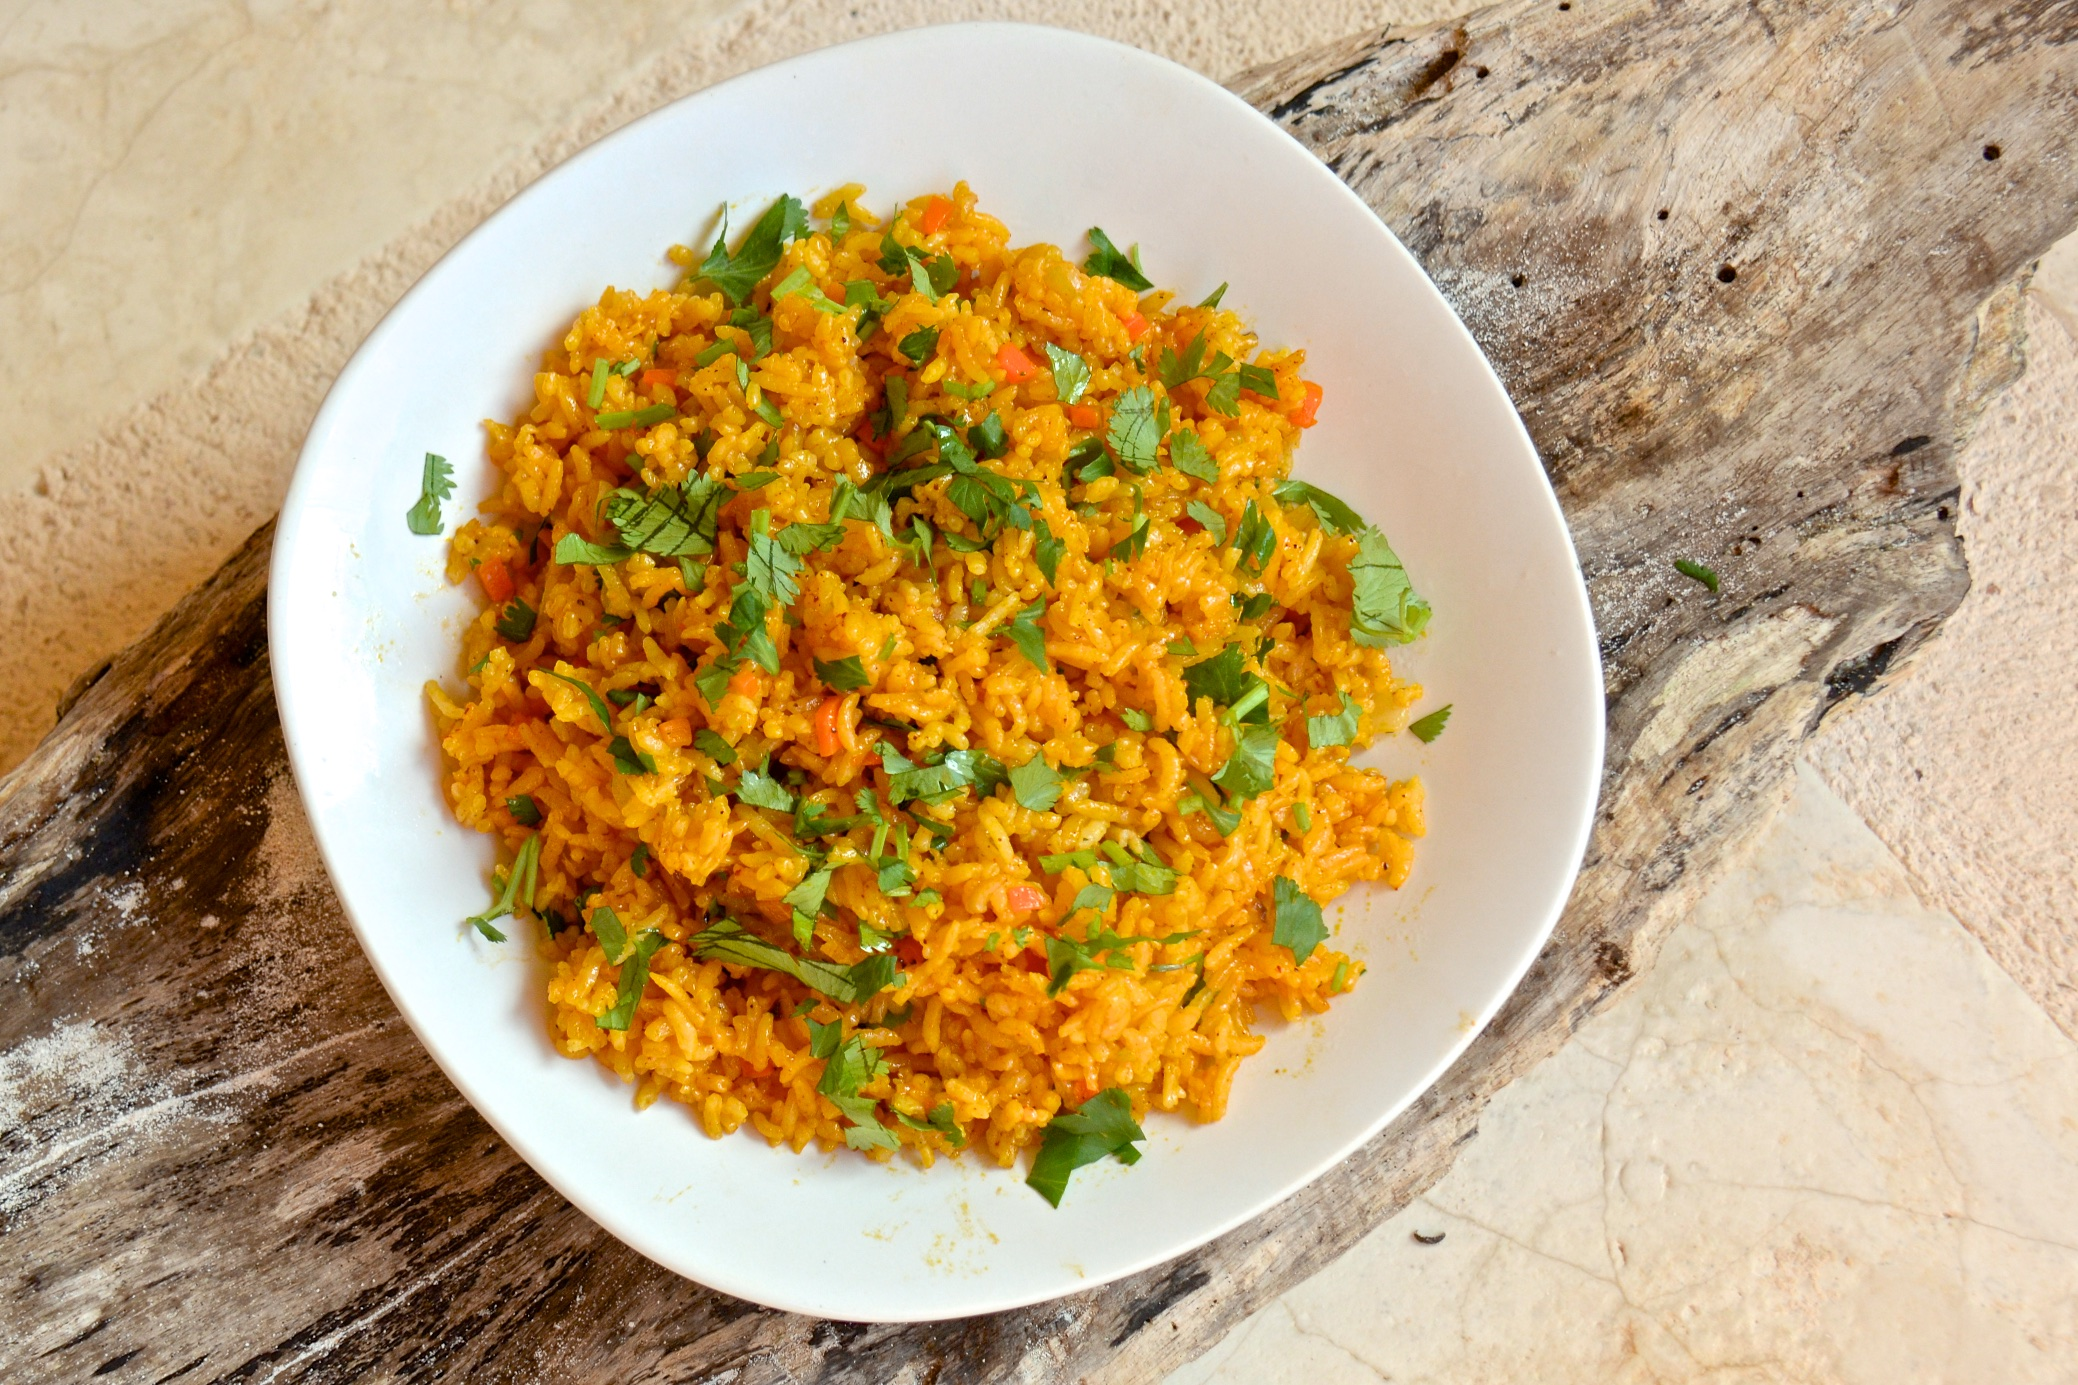 Mexican yellow rice with achiote olive oil and lemons - Pizzeria venecia marbella ...